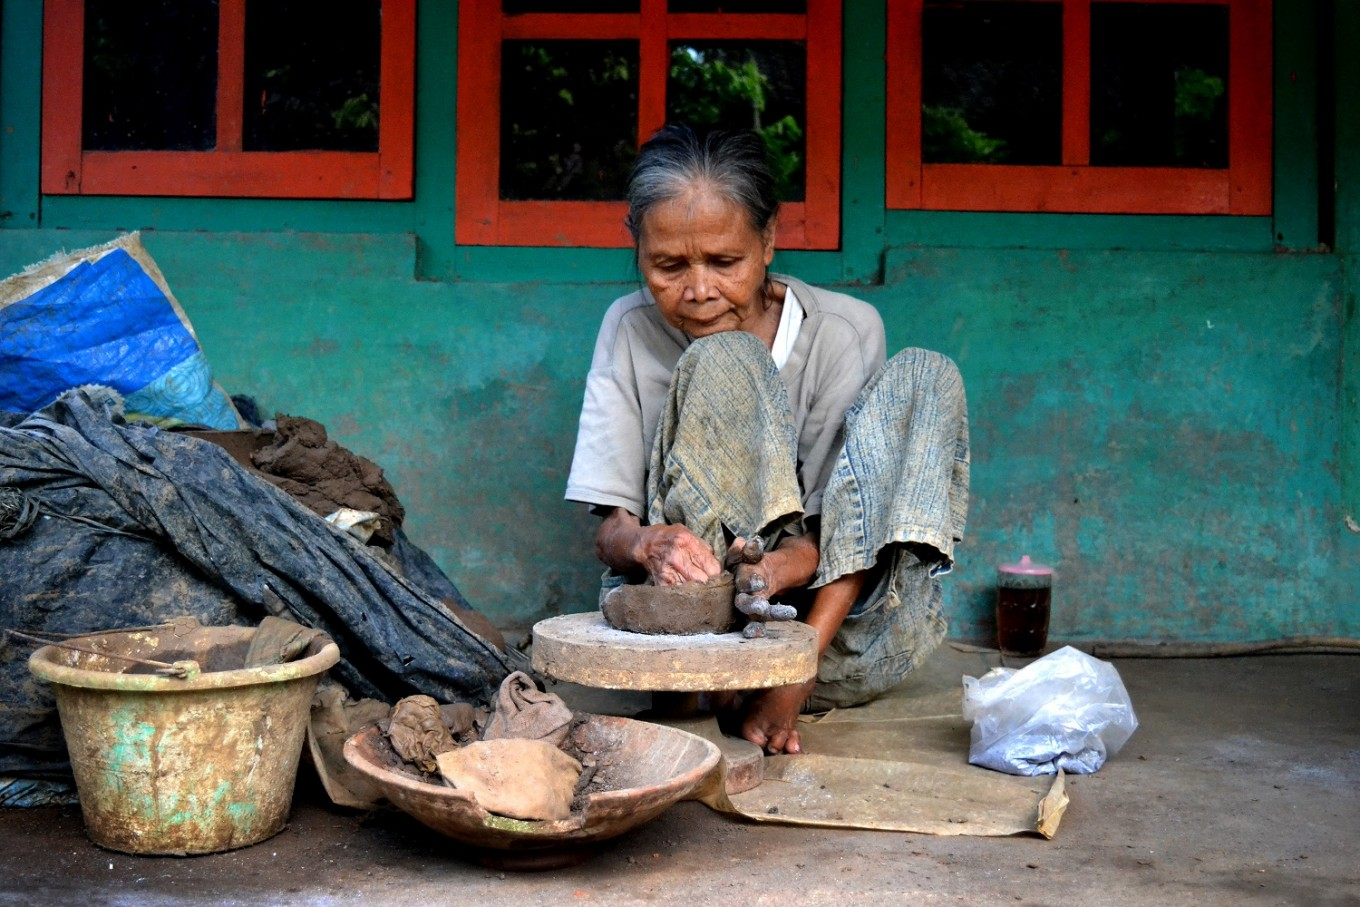 Klipoh resident Sian shared that she had been making pottery since she was little.